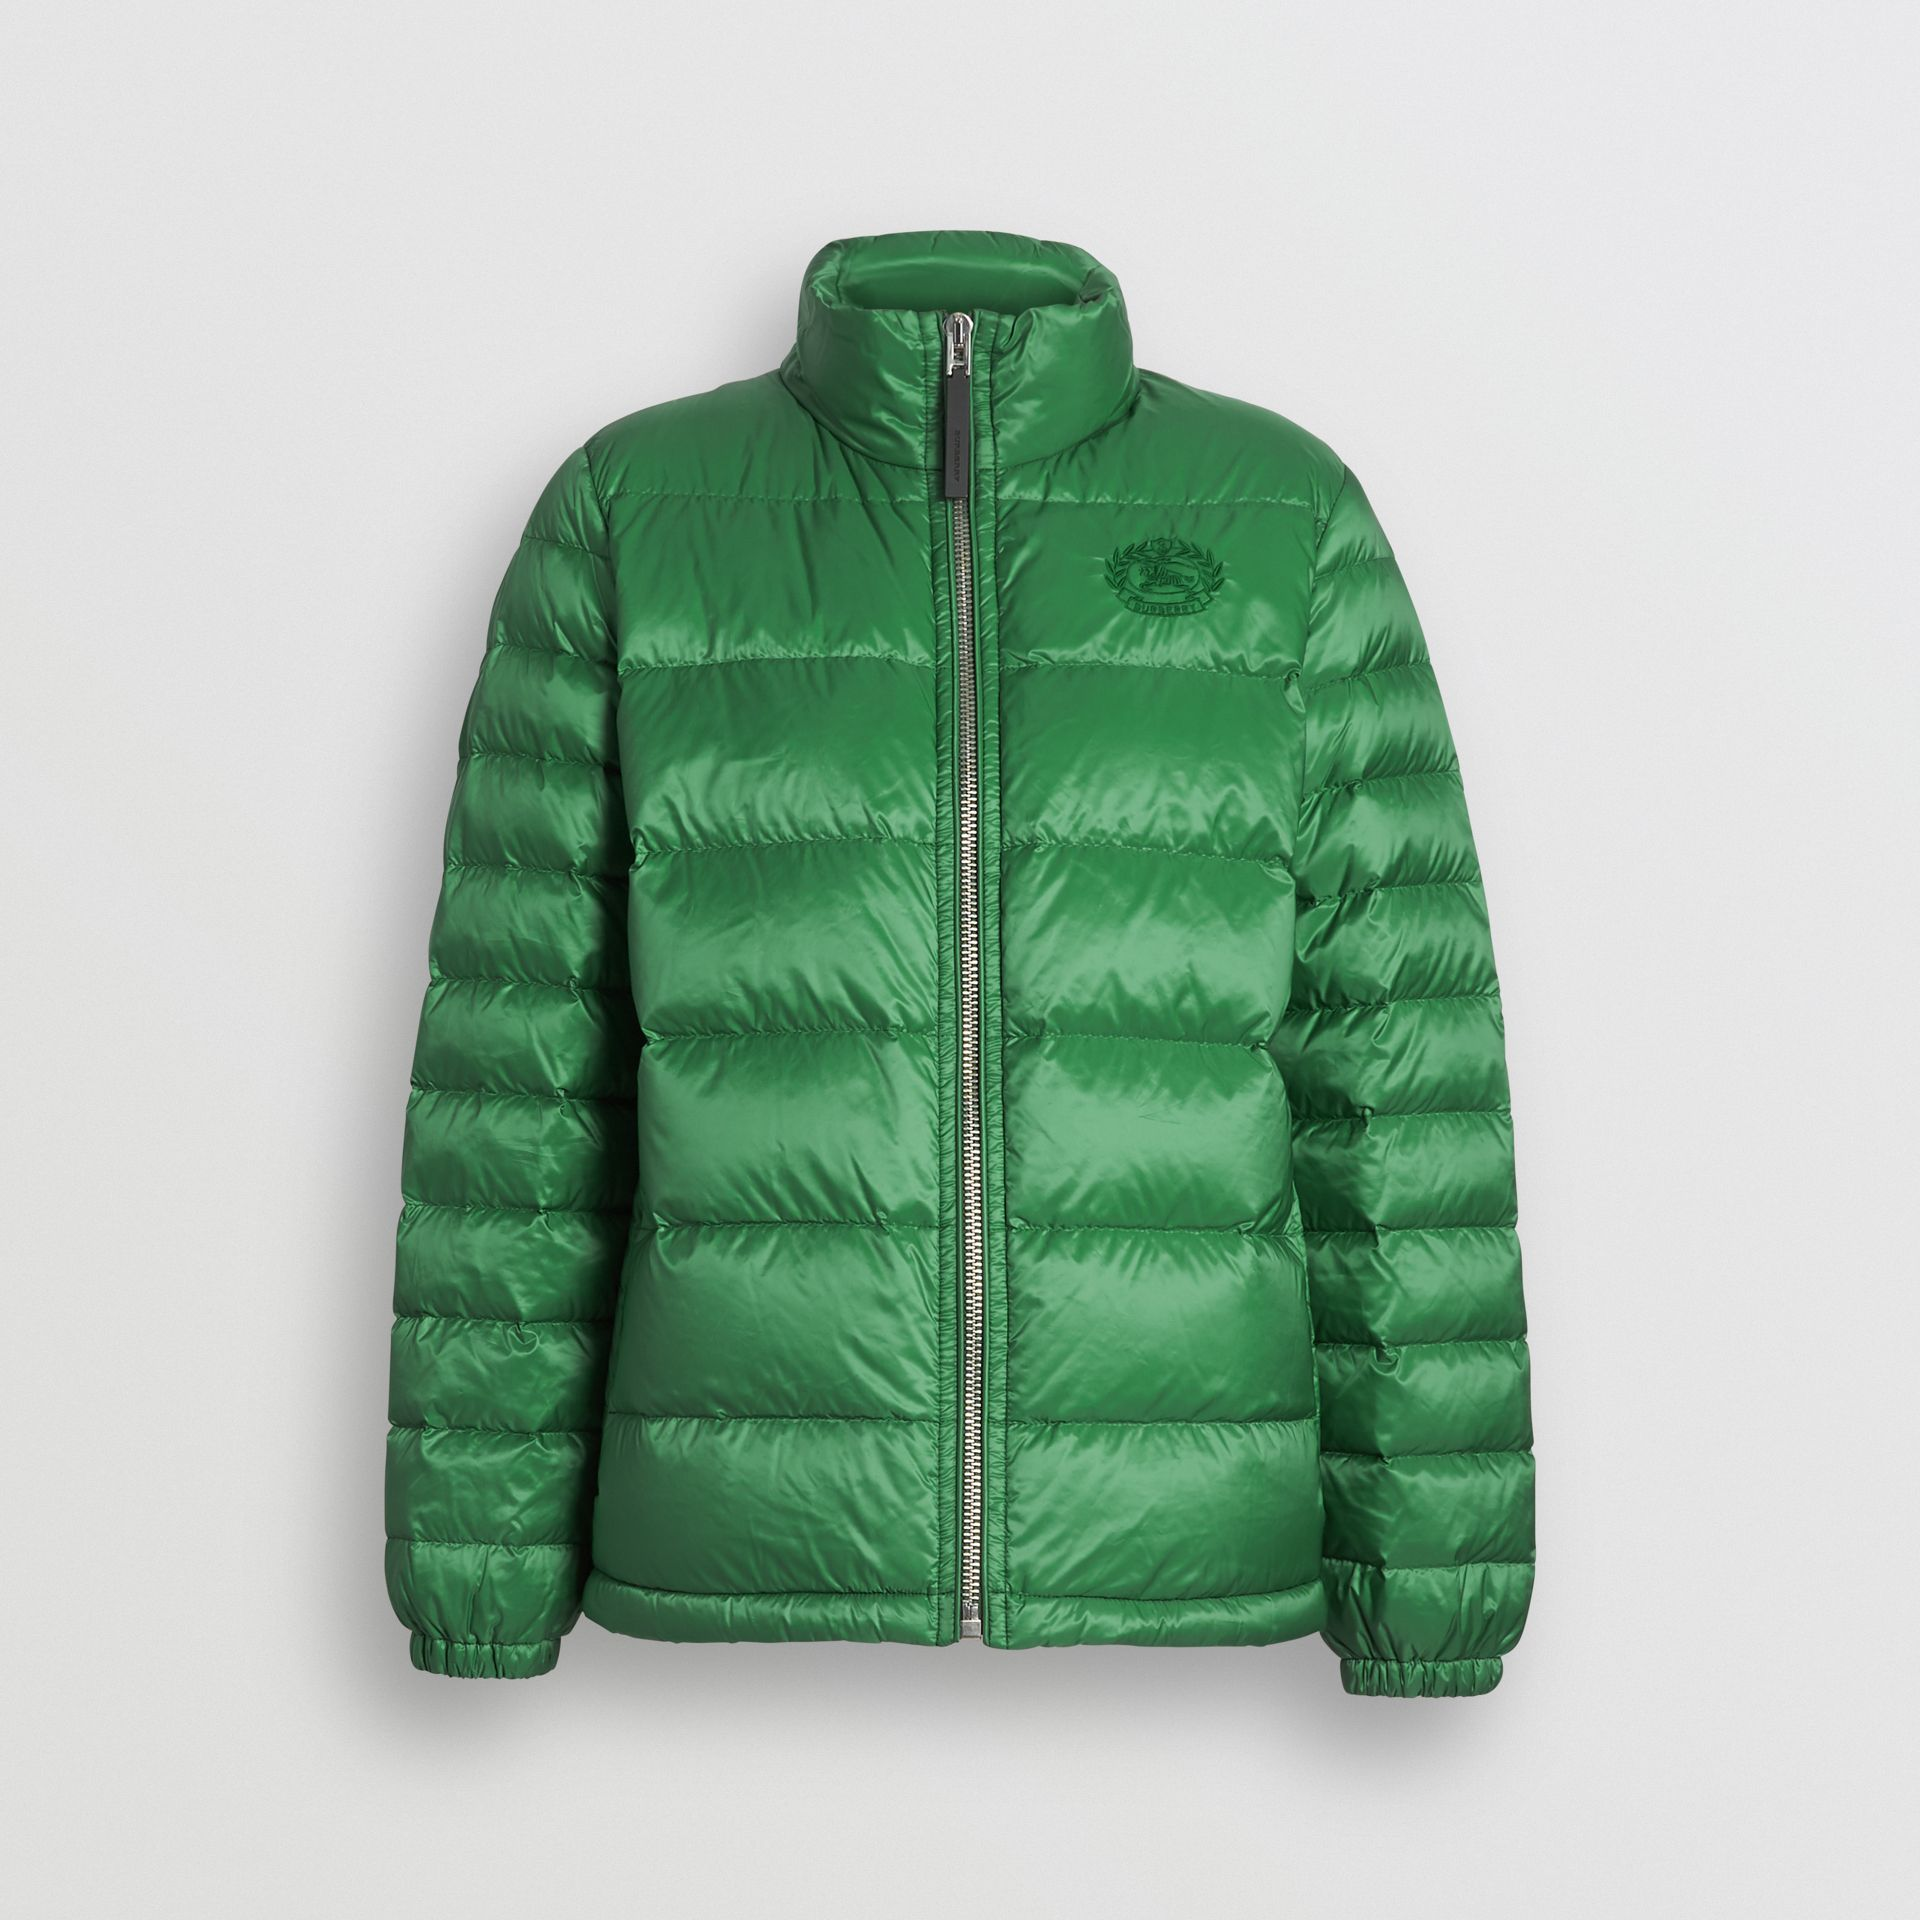 Down-filled Puffer Jacket in Emerald Green - Women | Burberry United Kingdom - gallery image 3